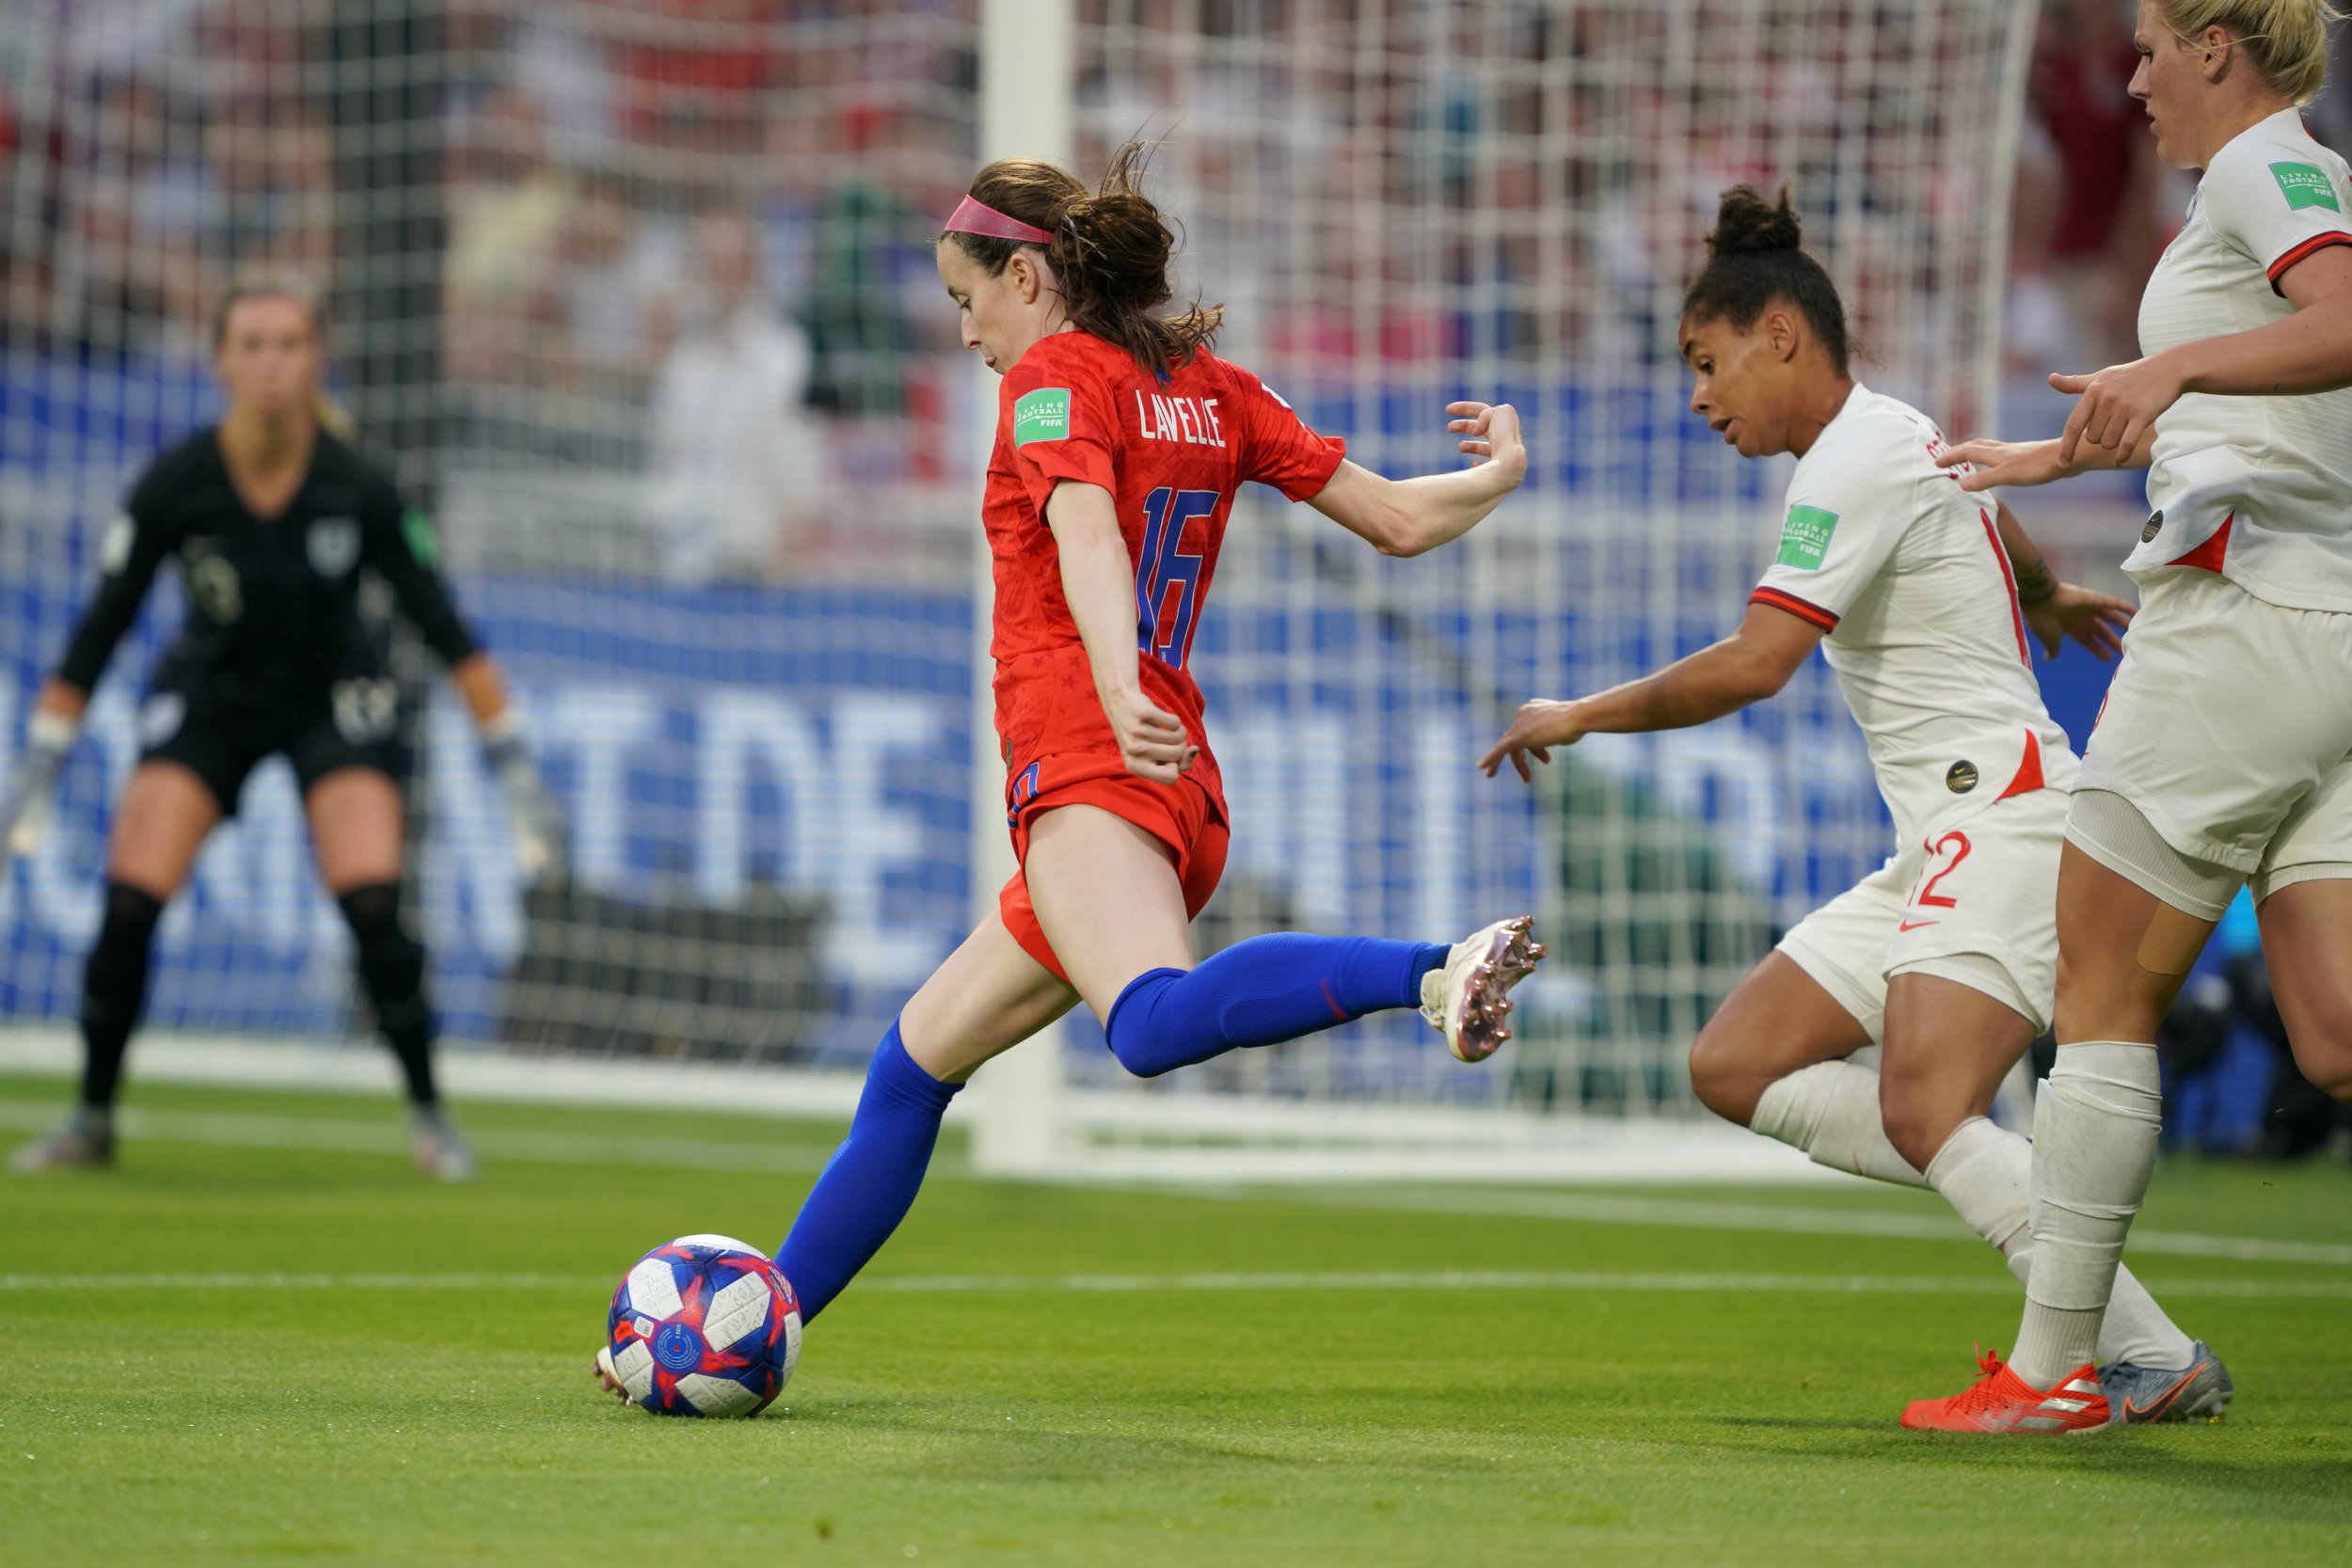 Key members of the 2019 World Cup Champion USWNT began their careers in the WPSL, including Rose Lavelle. (Image courtesy of WashingtonSpirit.com)